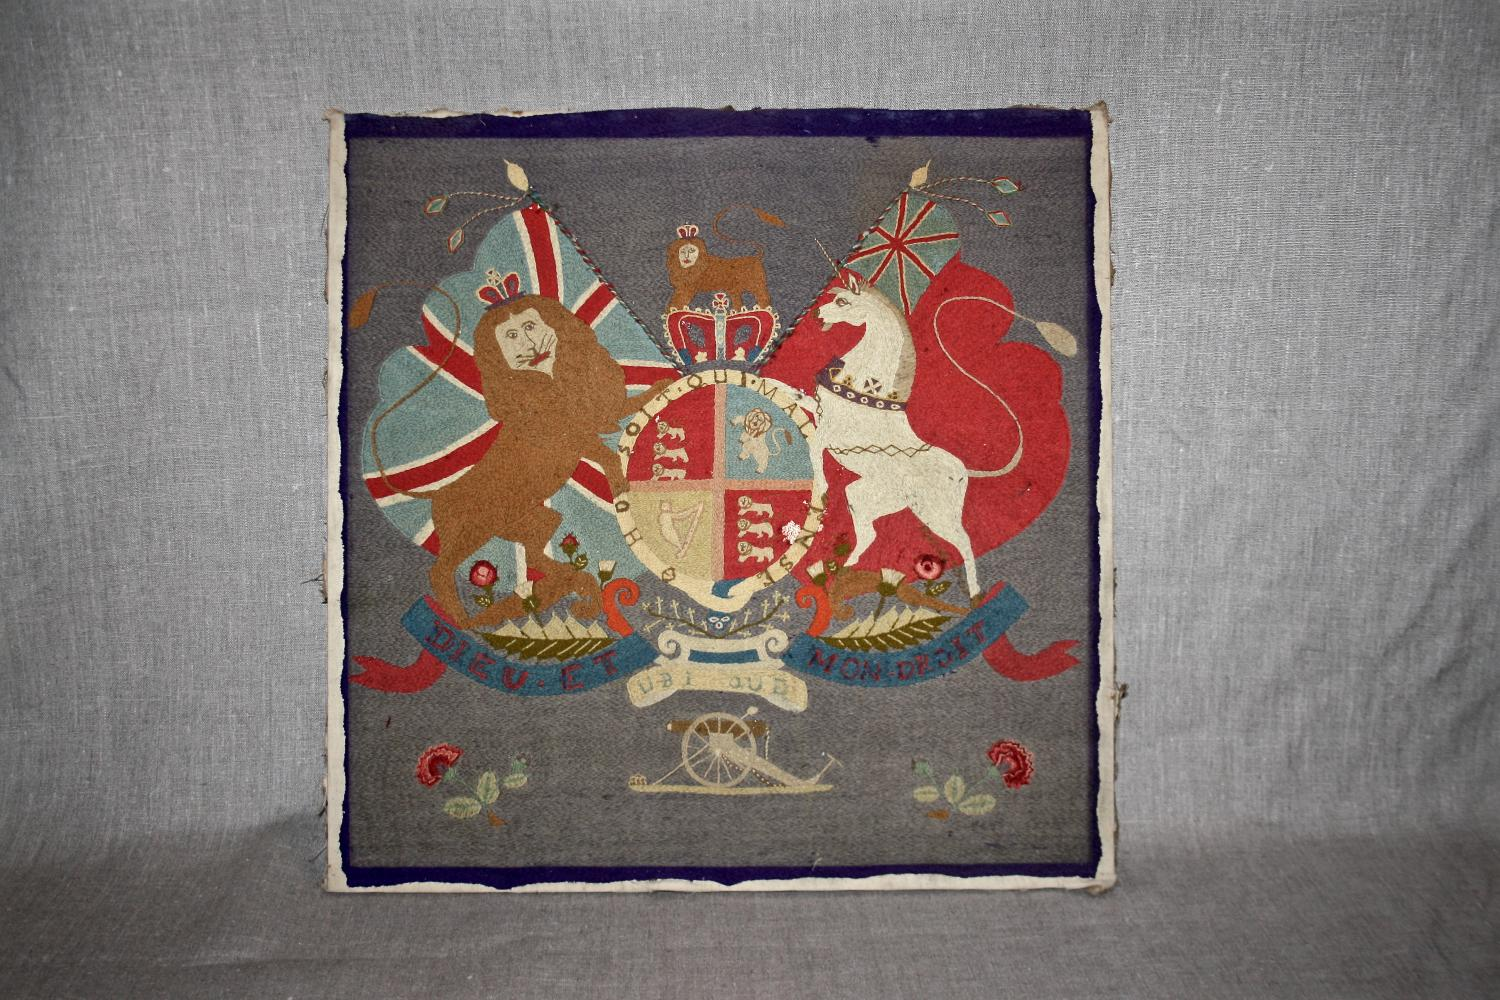 Royal coat of arms crest